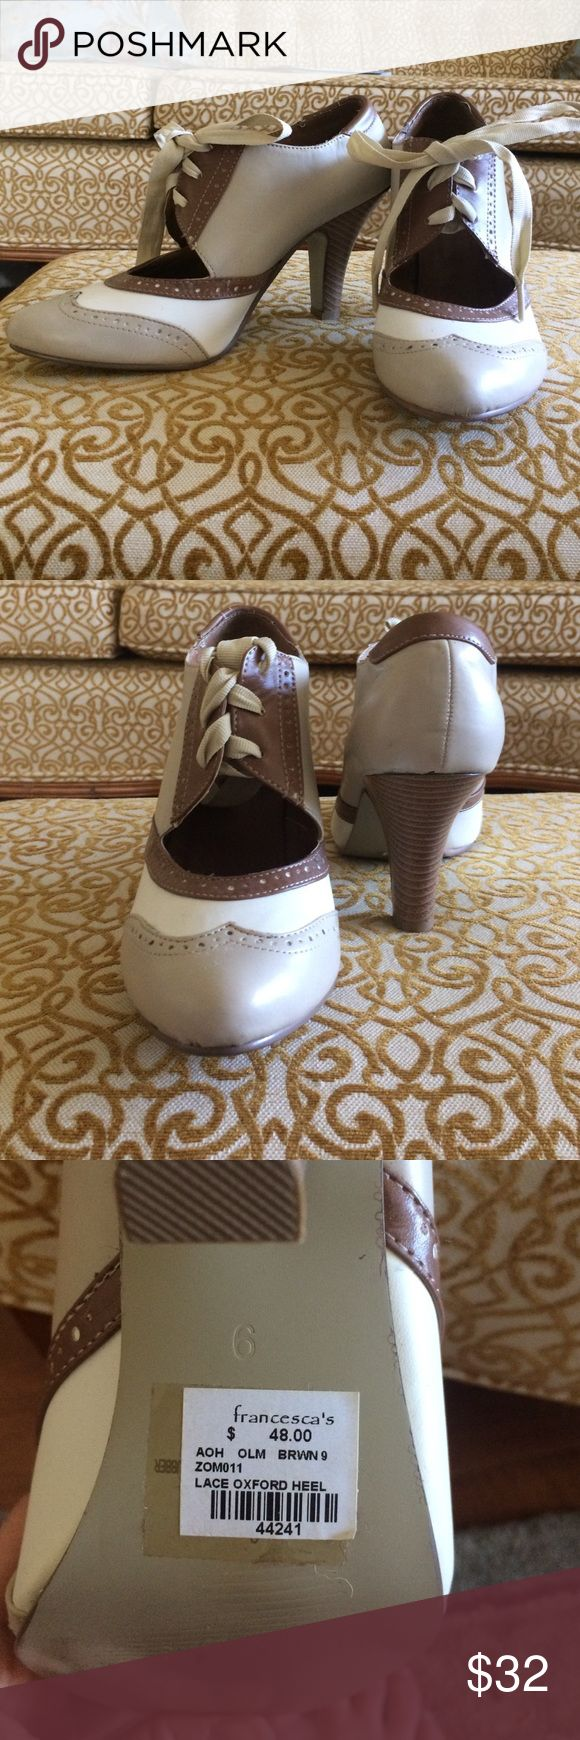 Francesca Lace Oxford Heel size 9 Brand new oxford lace heel size 9. Francesca's Collections Shoes Heels